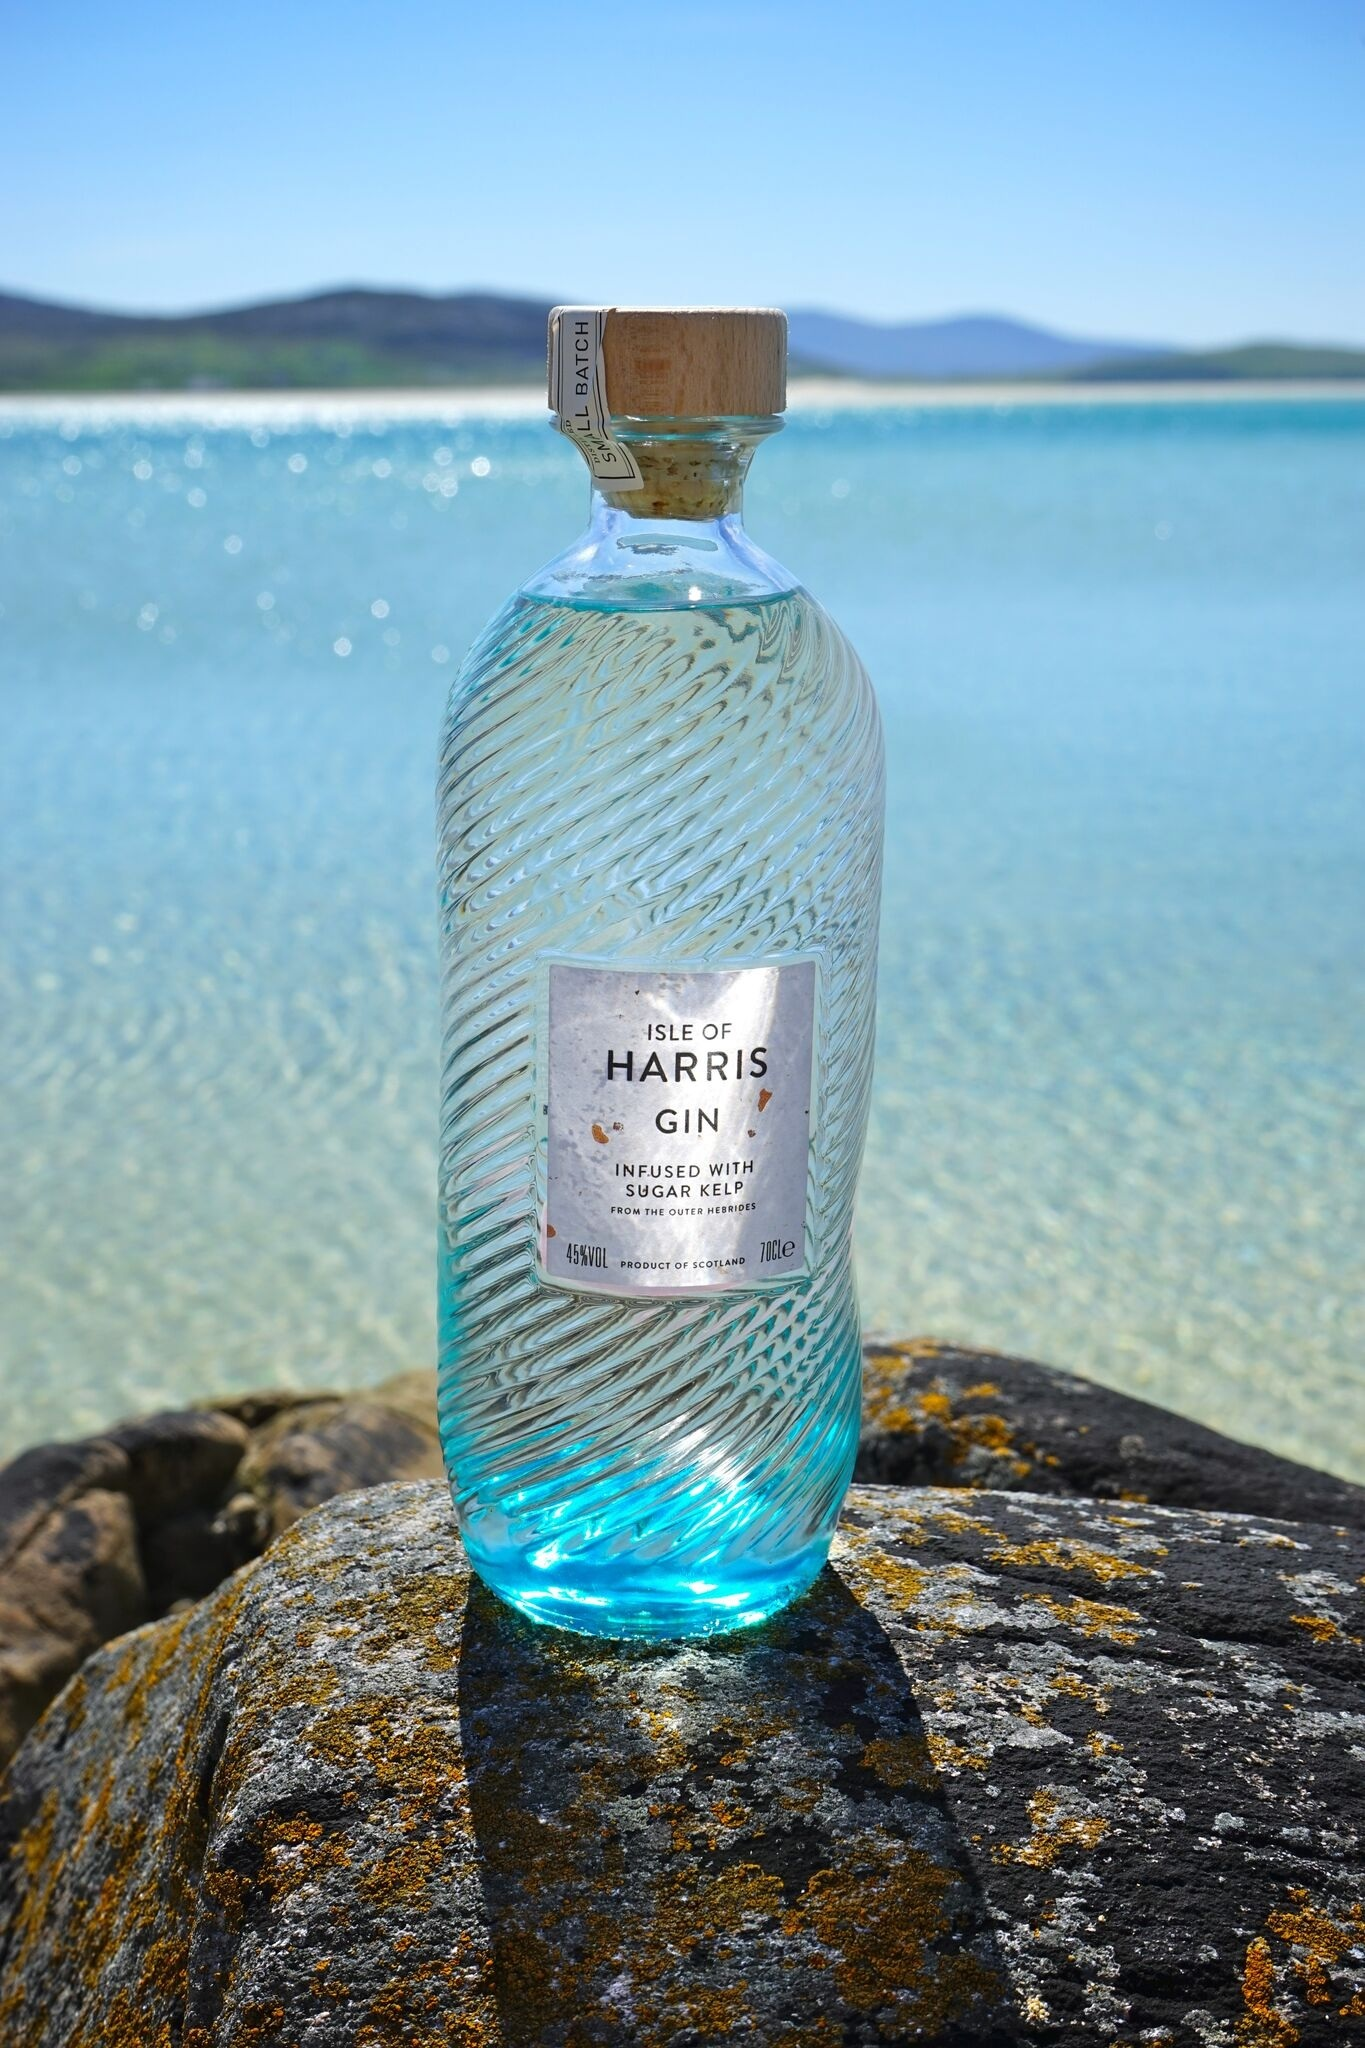 Isle of Harris Gin's distinctive bottles are in short supply.